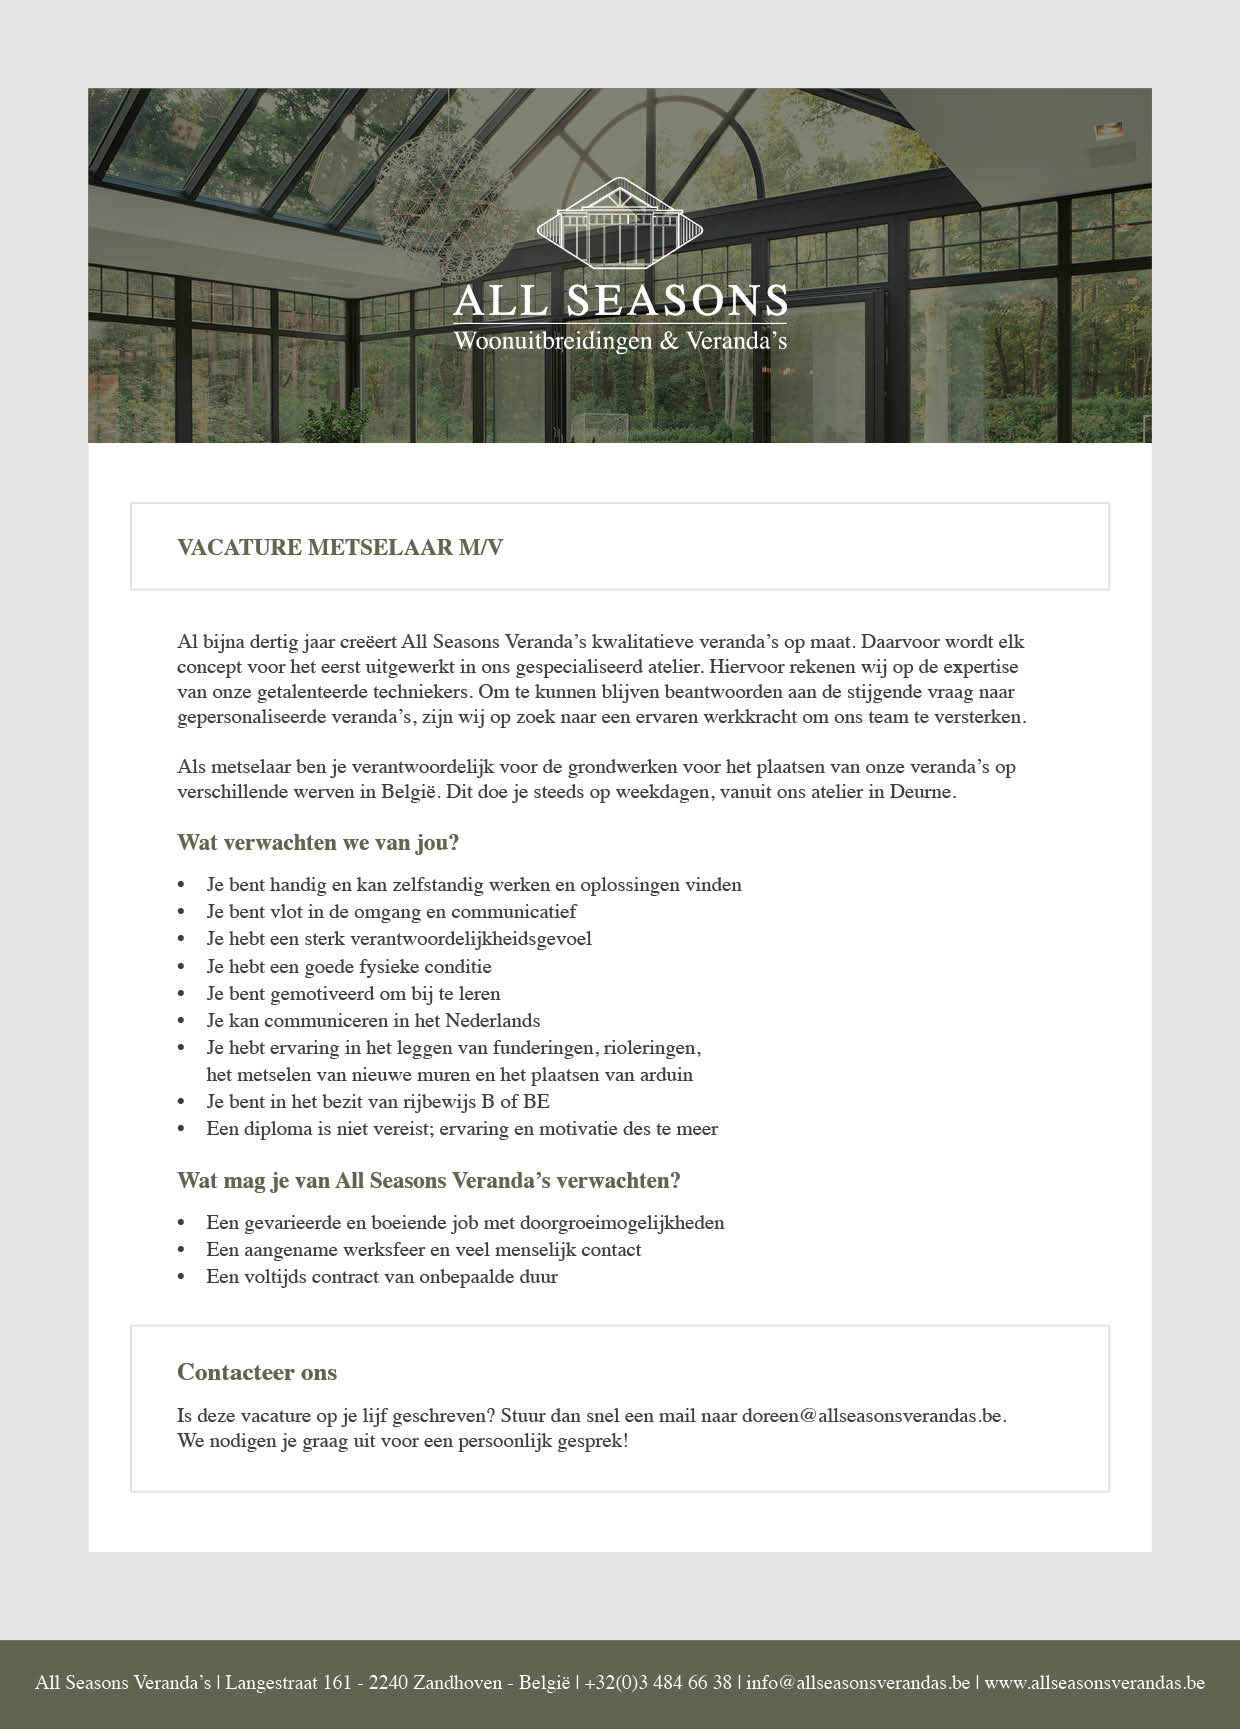 All Seasons Verandas Vacature Metselaar